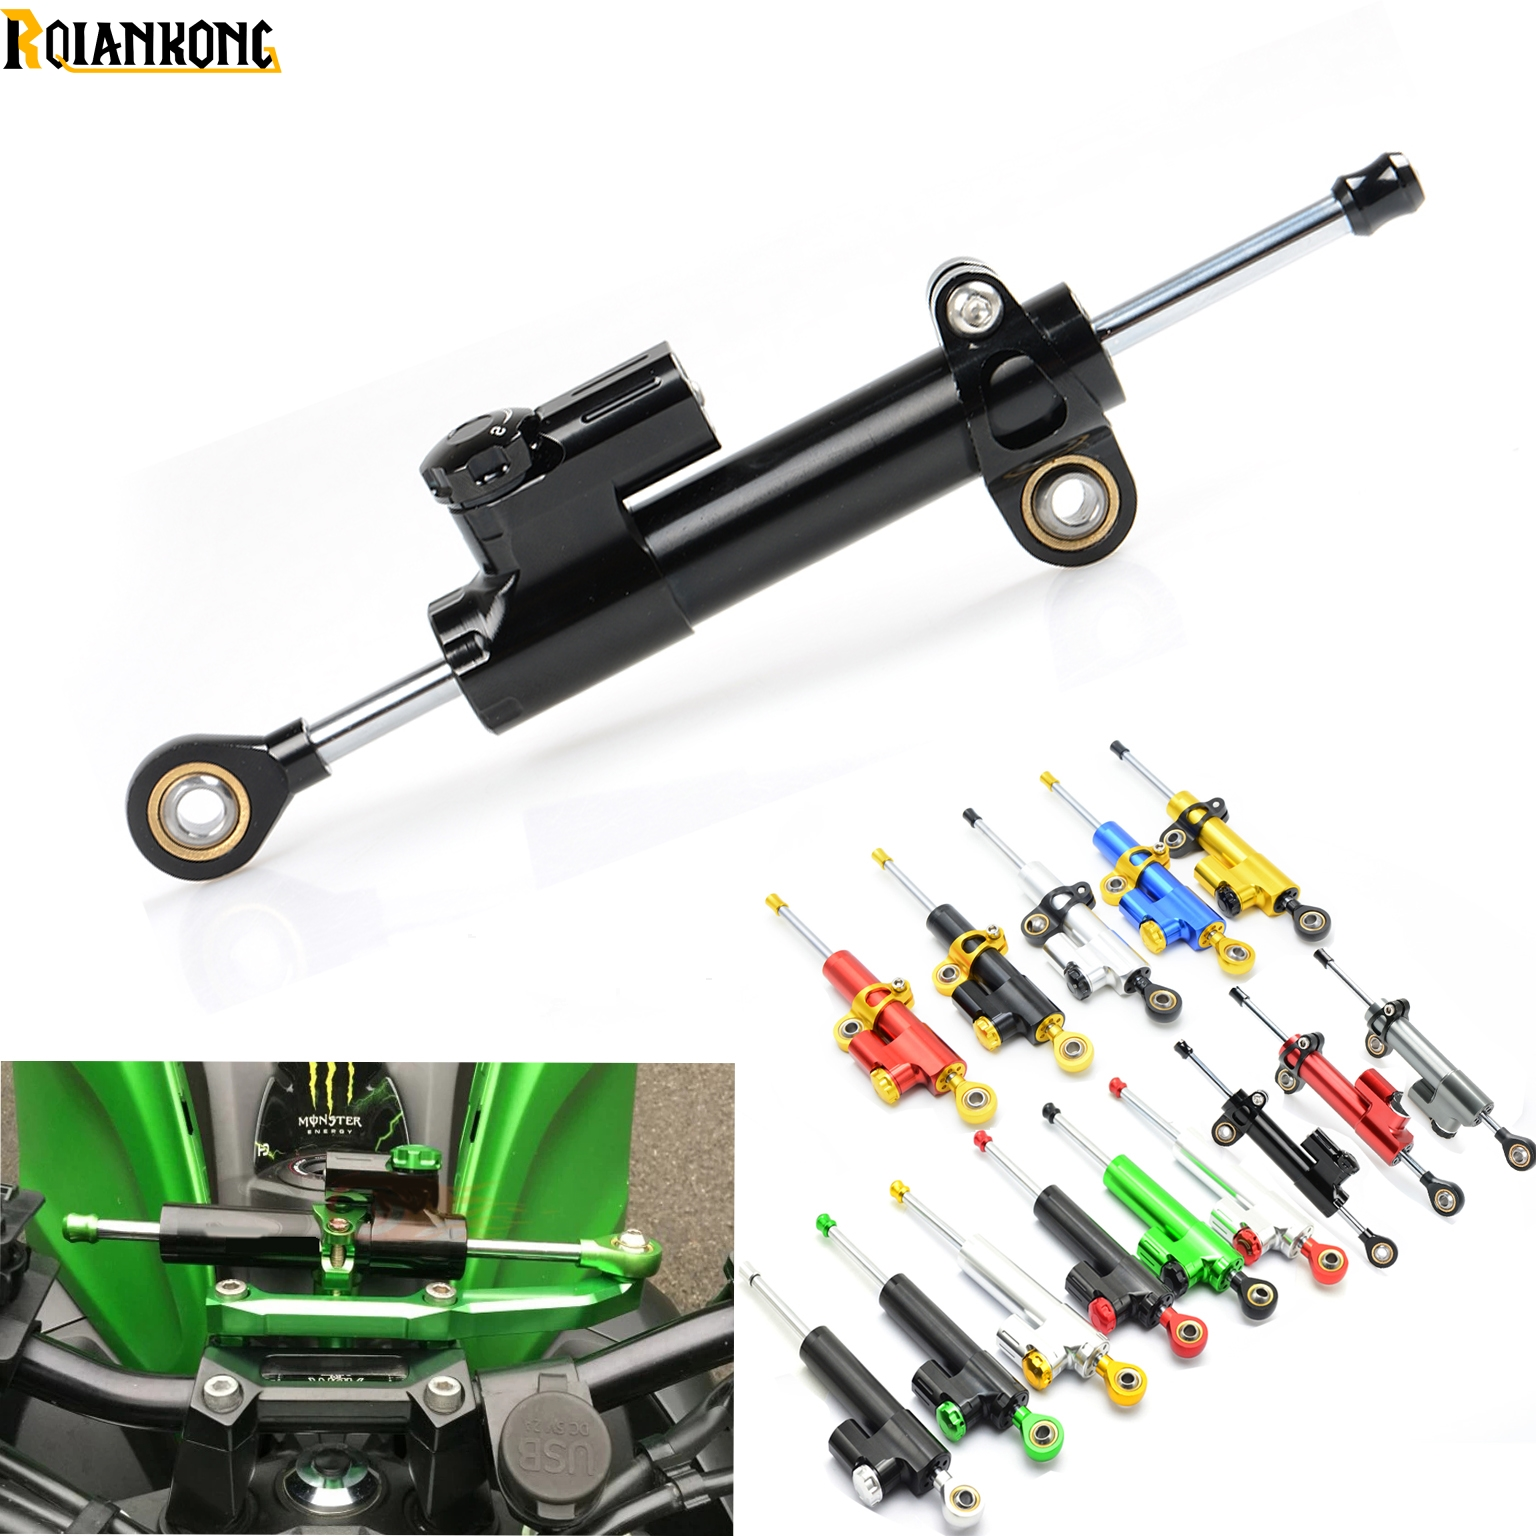 CNC Motorcycle Steering Damper Stabilizer Linear Safe Control for KTM 1050 1090 1190 1290 Adventure R RC8 Super Duke T ABS laser mark motorcycle modified muffler sc carbon fiber exhaust pipe for ktm 1050 1090 1190 1290 adventure r rc8 super duke t abs